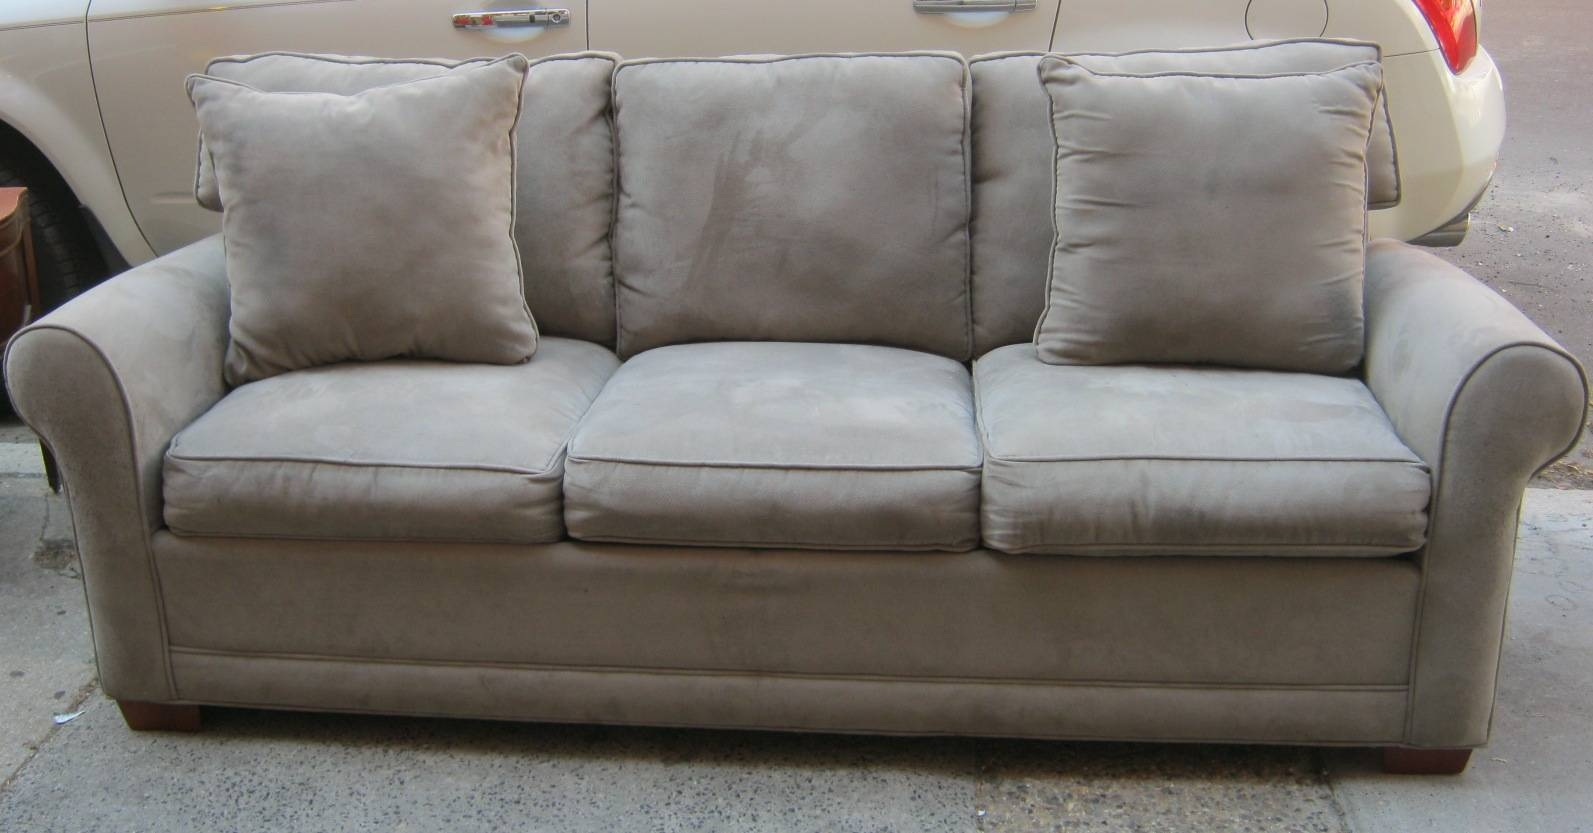 Uhuru Furniture & Collectibles: Grey Microfiber Sofa Bed - Sold intended for Microsuede Sofa Beds (Image 15 of 15)